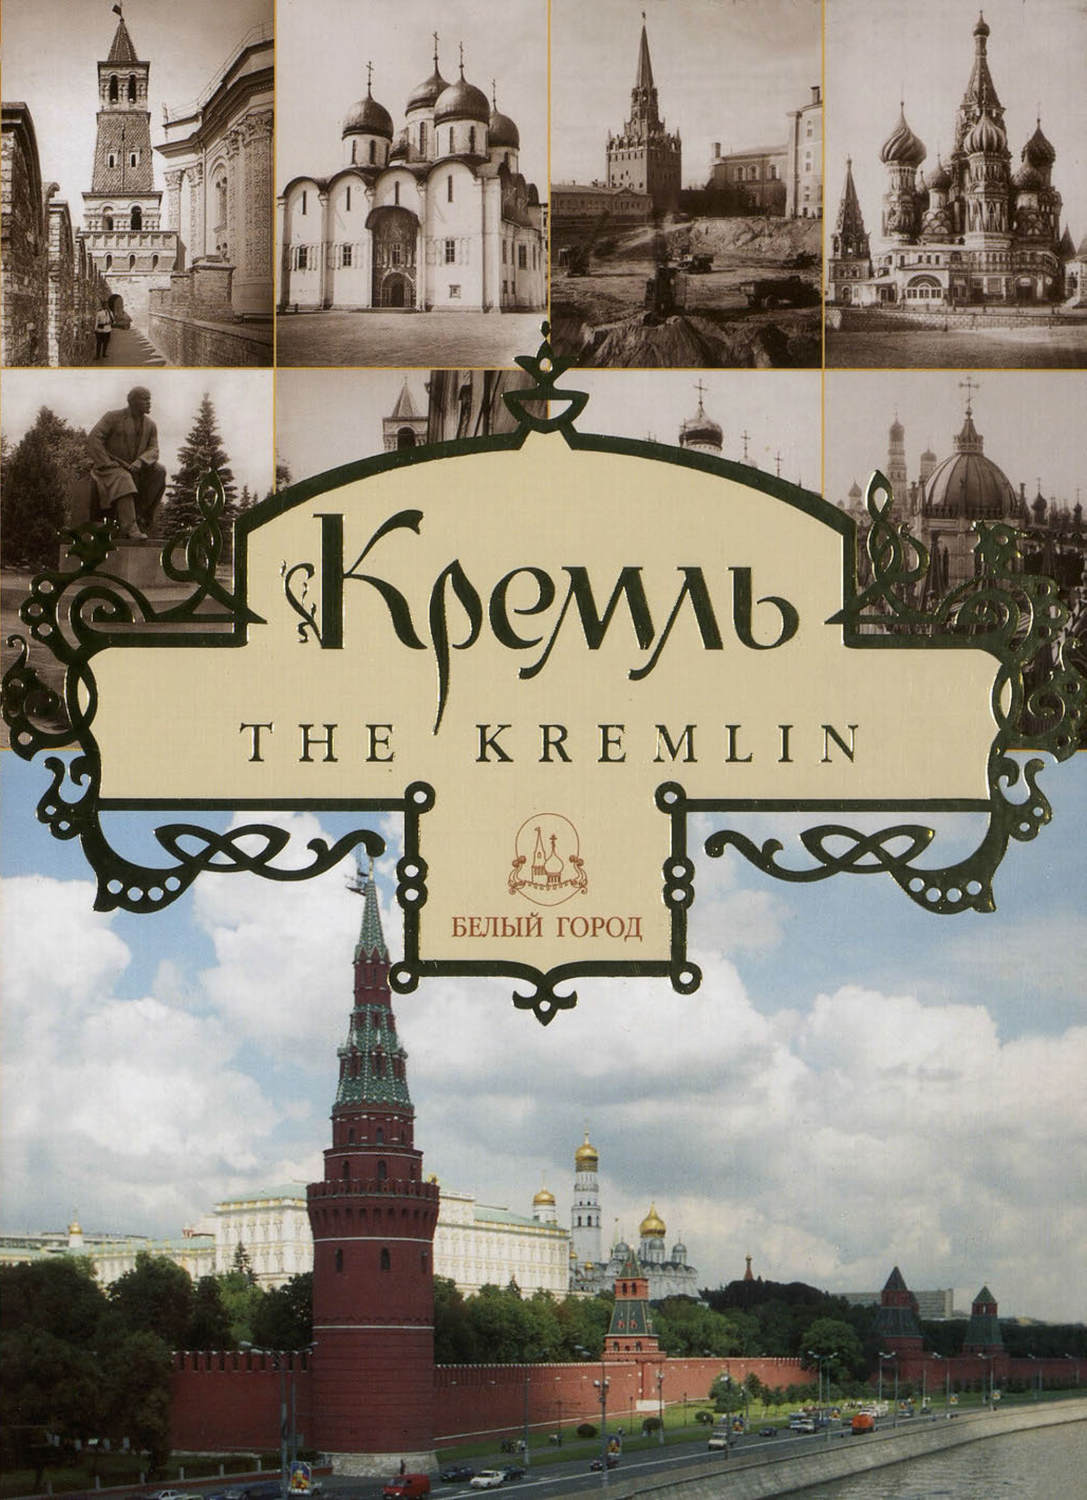 kremlin singles & personals History and architectural design of the cathedral of the annunciation home church of the moscow princes in the kremlin tourist information about the best places to see in moscow on this website, you will find the following: overviews, photos, reviews, rules for visiting moscow's top sights.